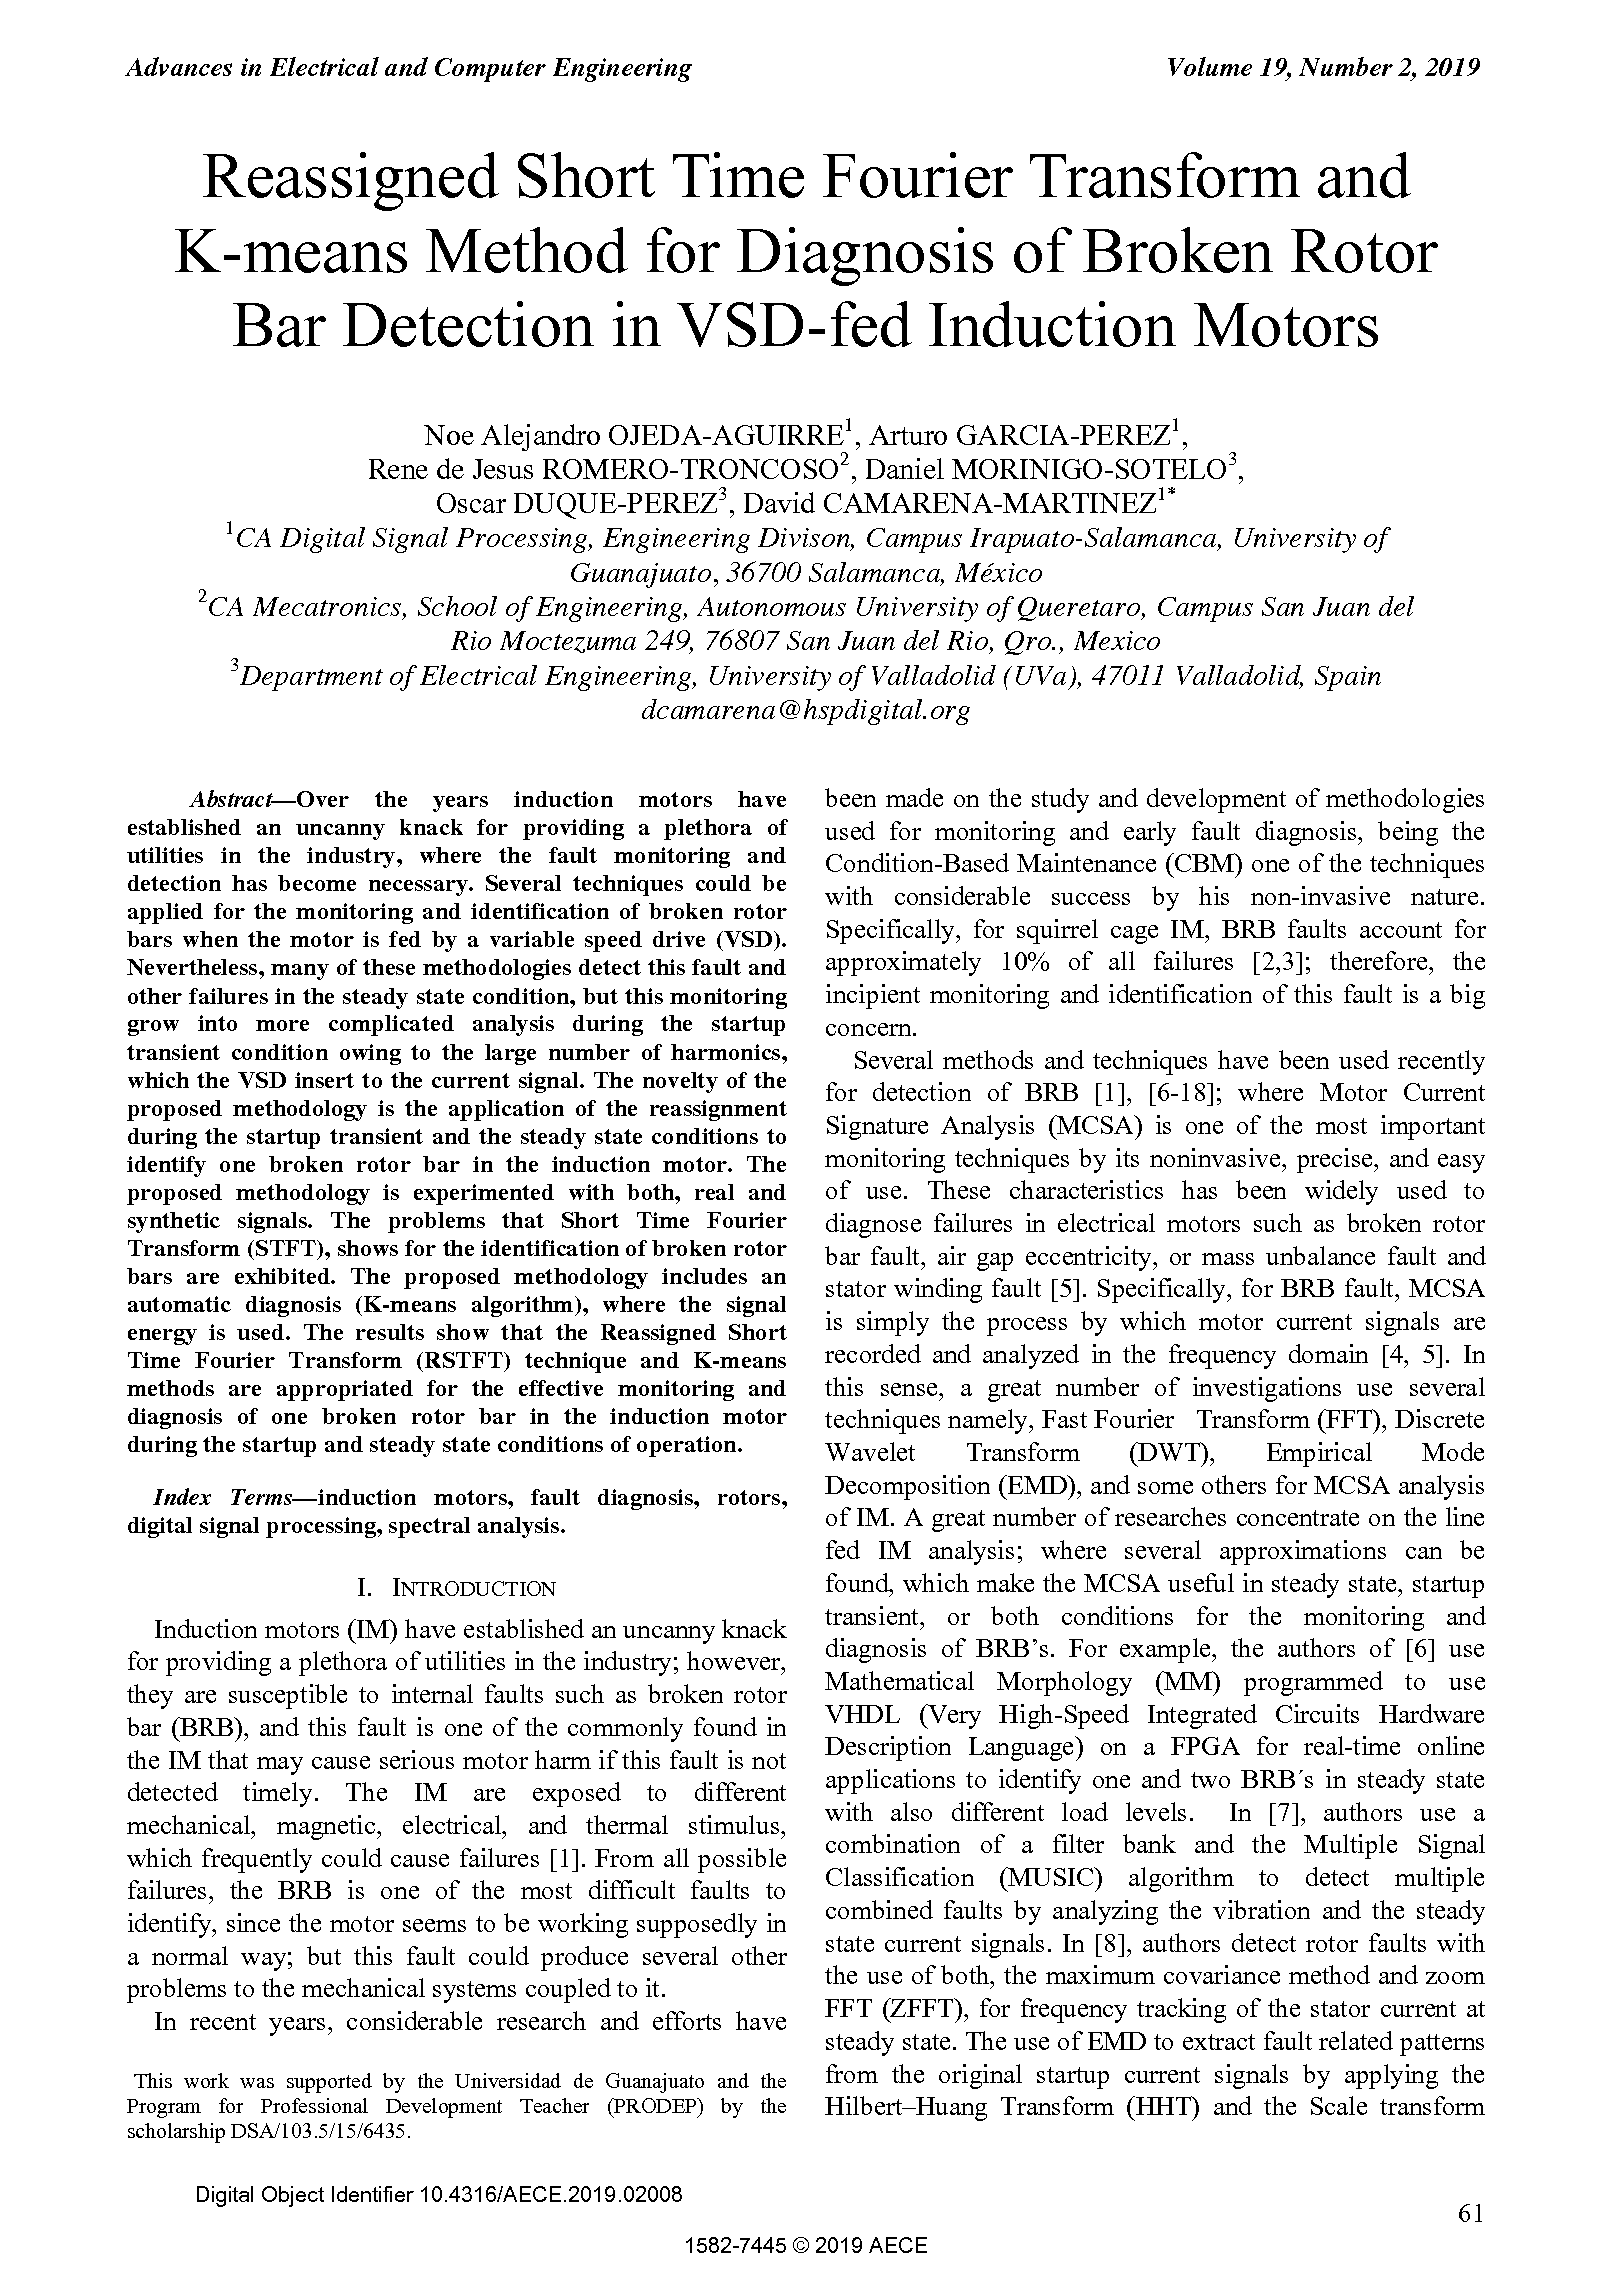 PDF Quickview for paper with DOI:10.4316/AECE.2019.02008